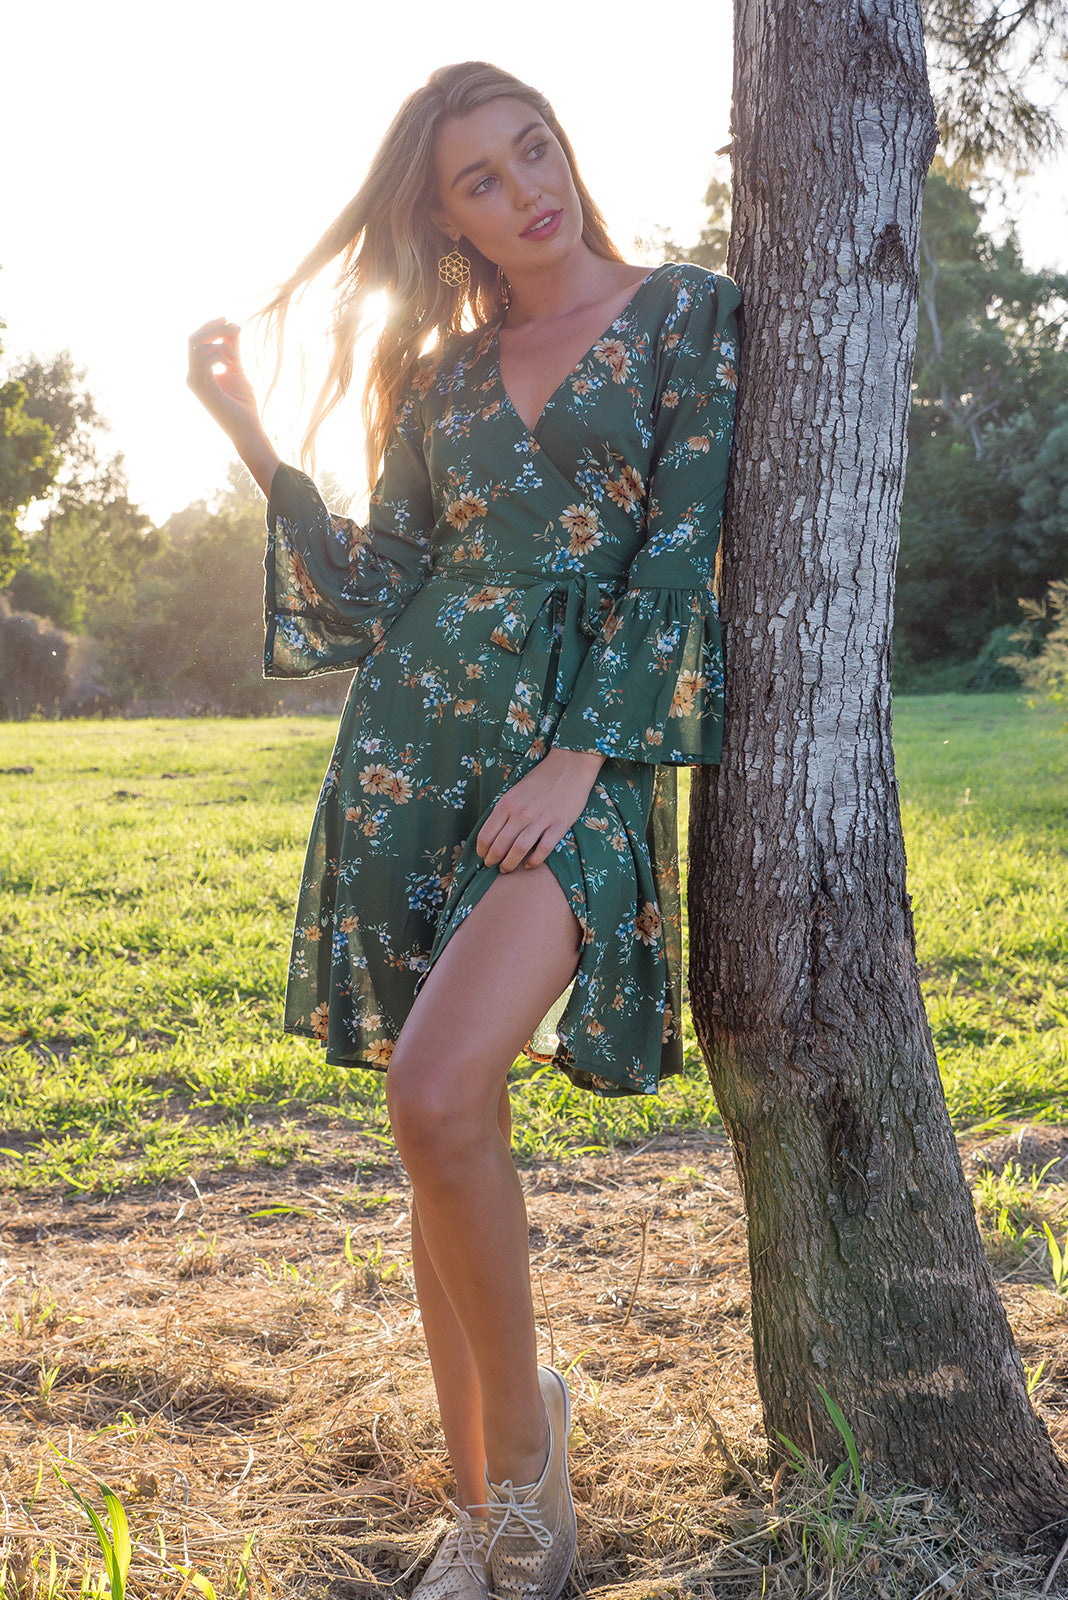 Claudia Wrap Dress in Garden Green with a frill trumpet sleeve in a soft green and floral print on woven rayon